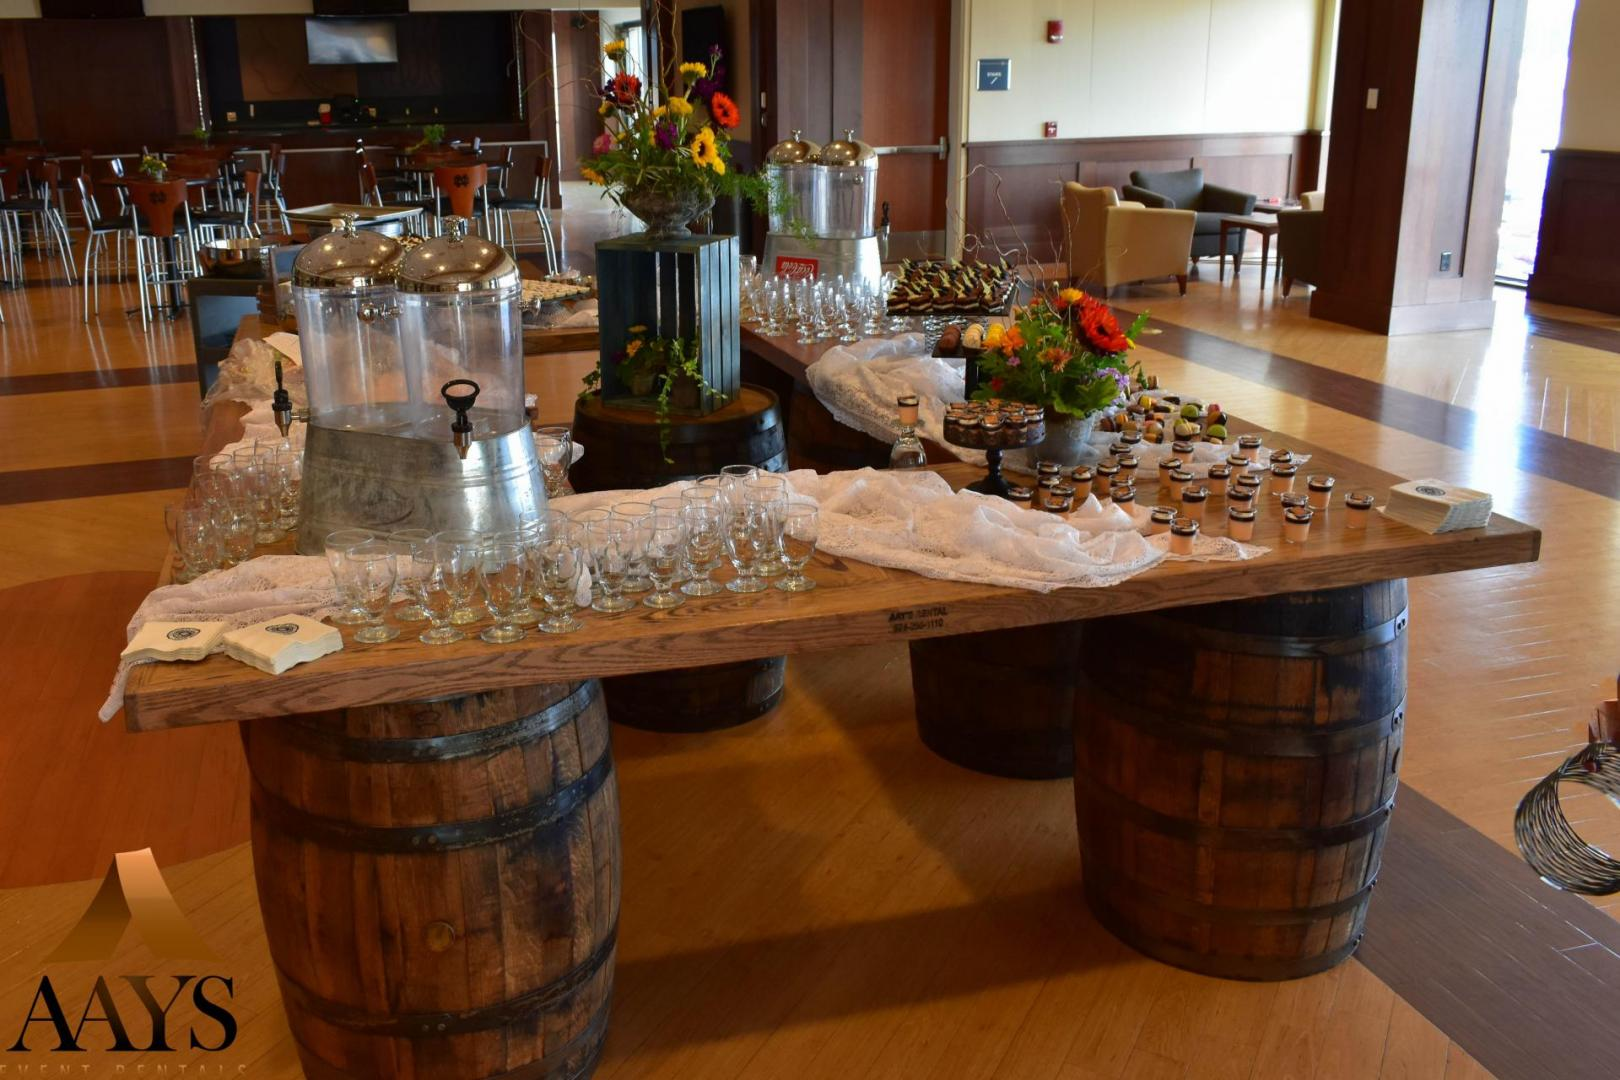 Whiskey Barrel Bars Aays Event Rentals